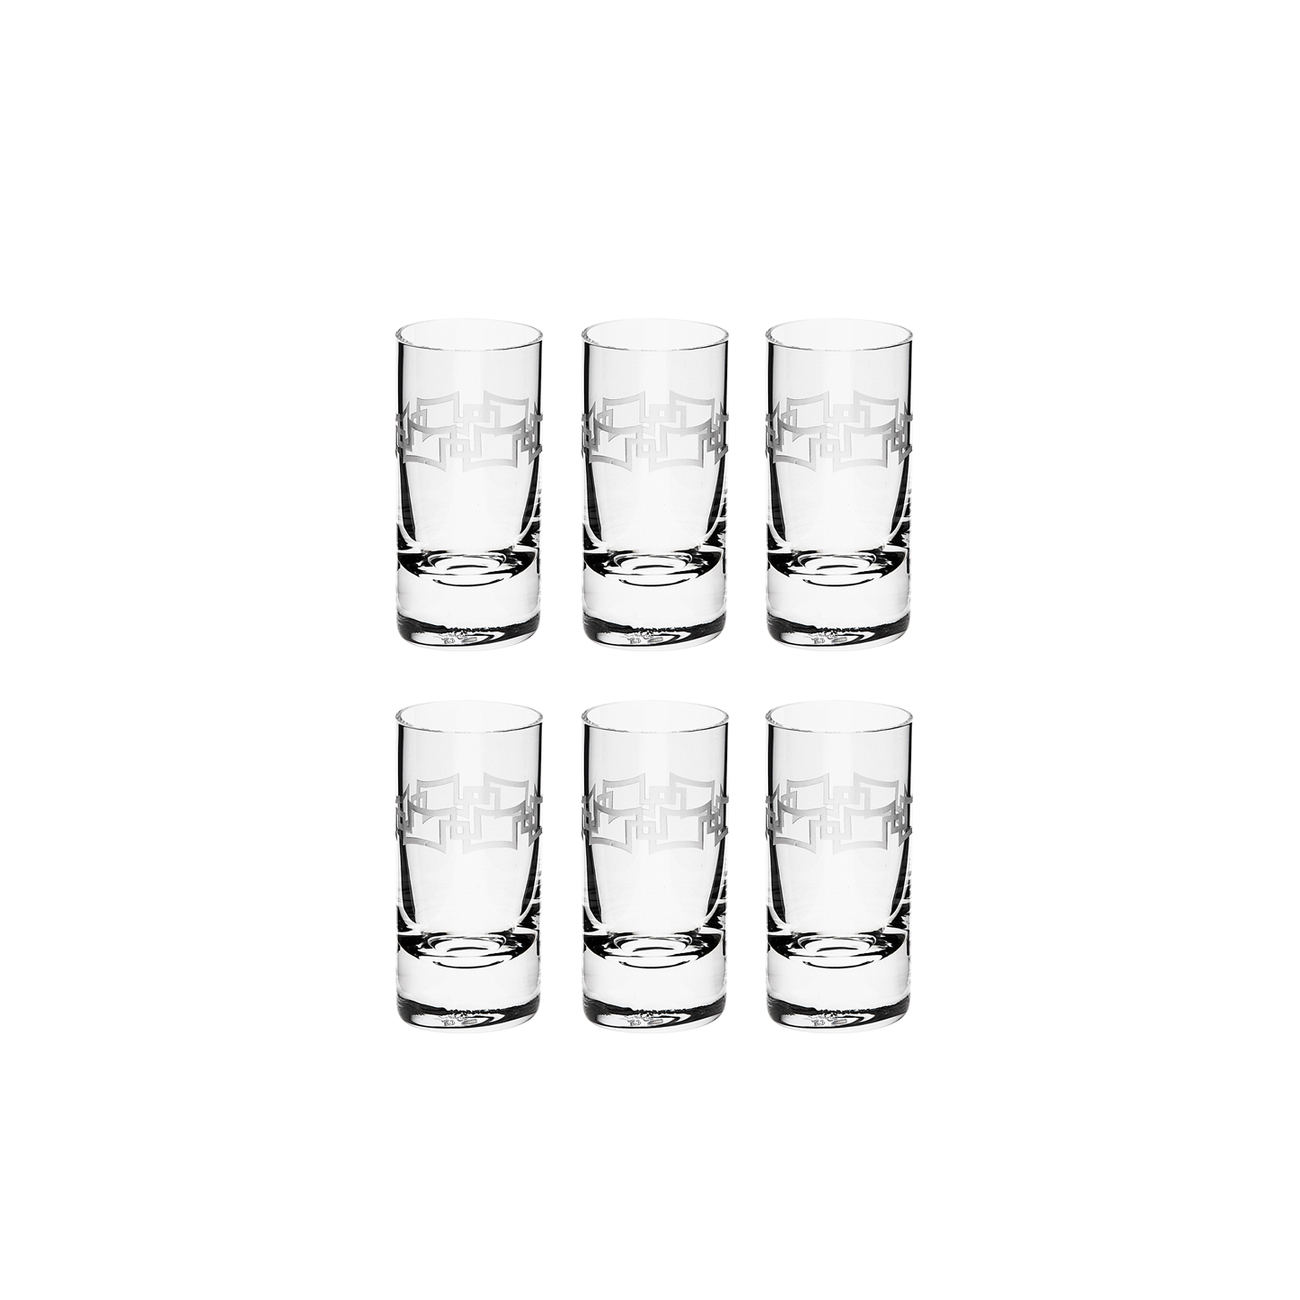 INFINITE SHOT GLASS, SET OF 6